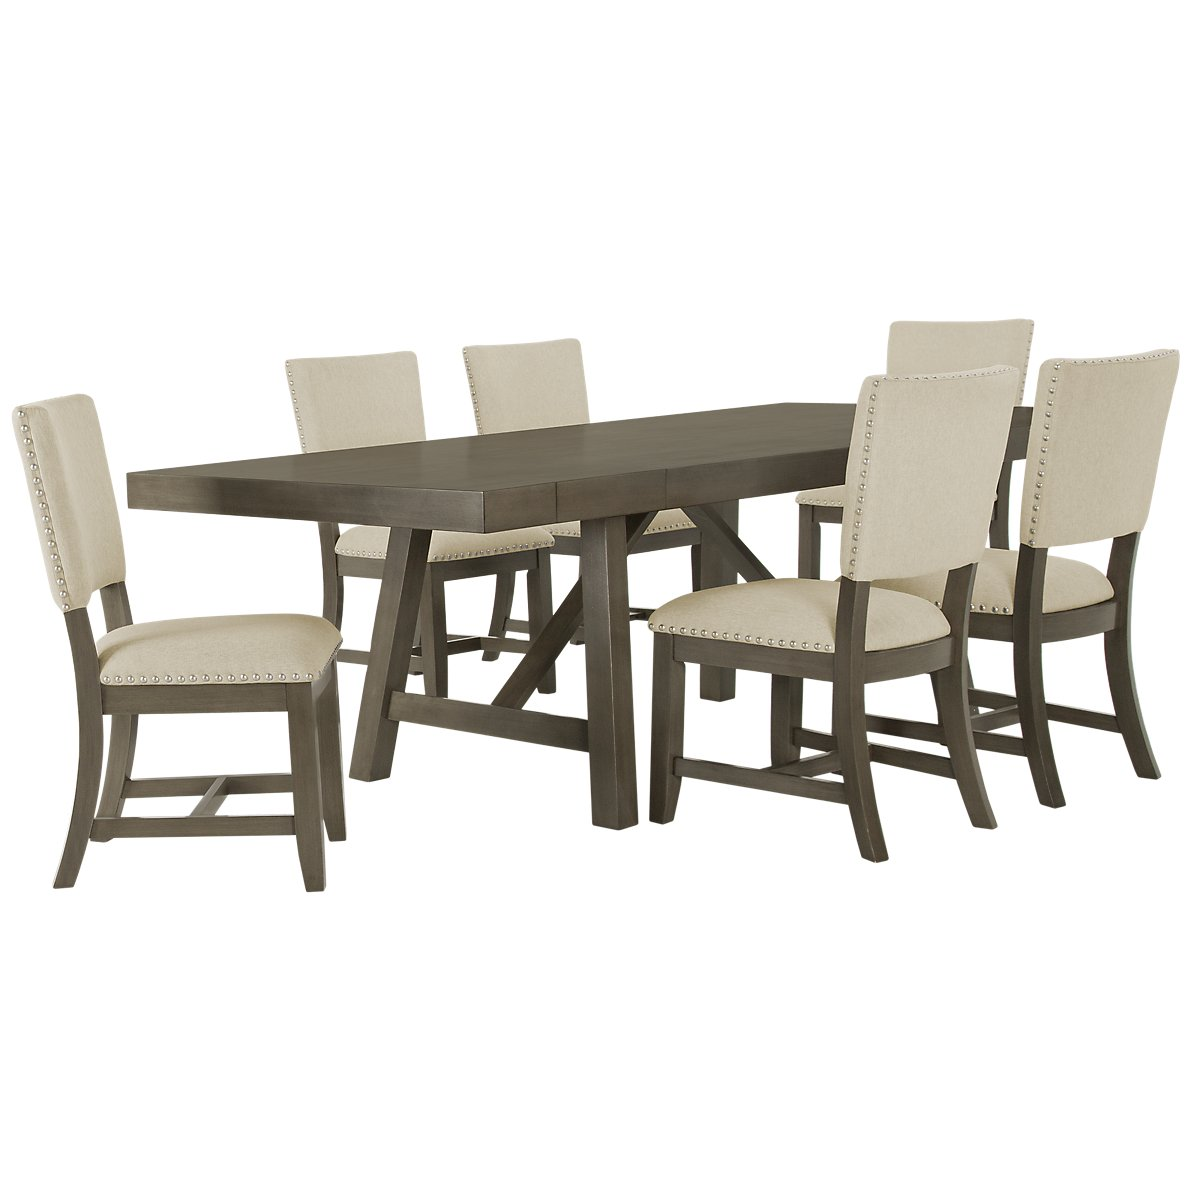 Omaha Gray Wood Table & 4 Upholstered Chairs